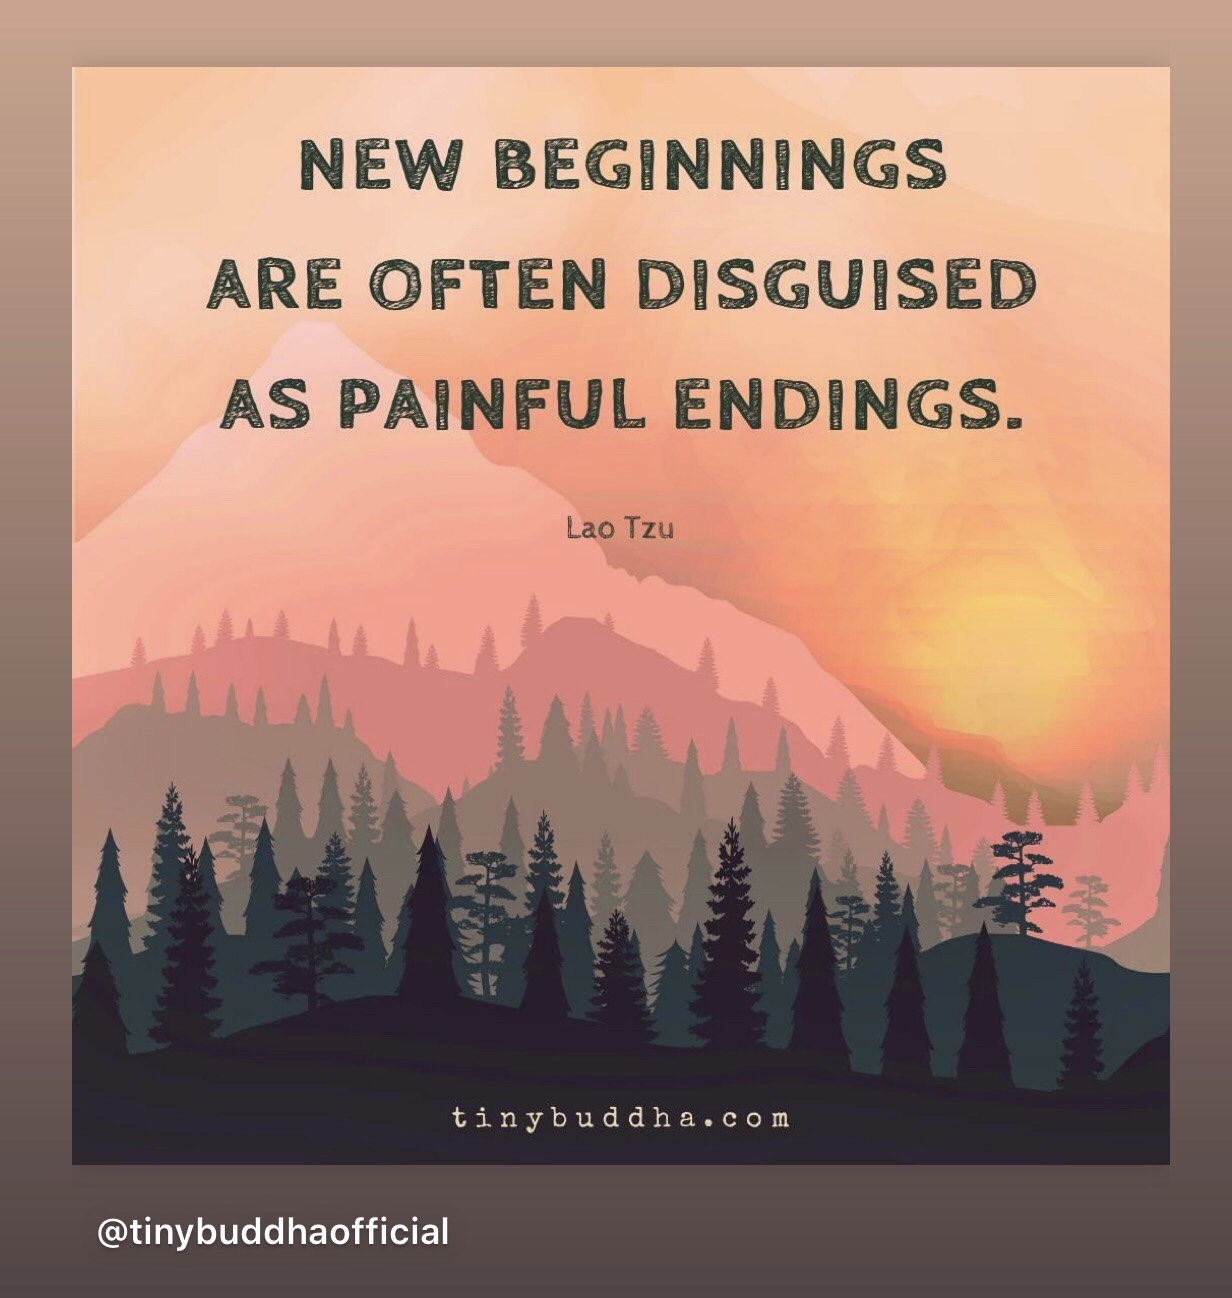 New beginnings are often disguised as painful endings. –Lao Tzu